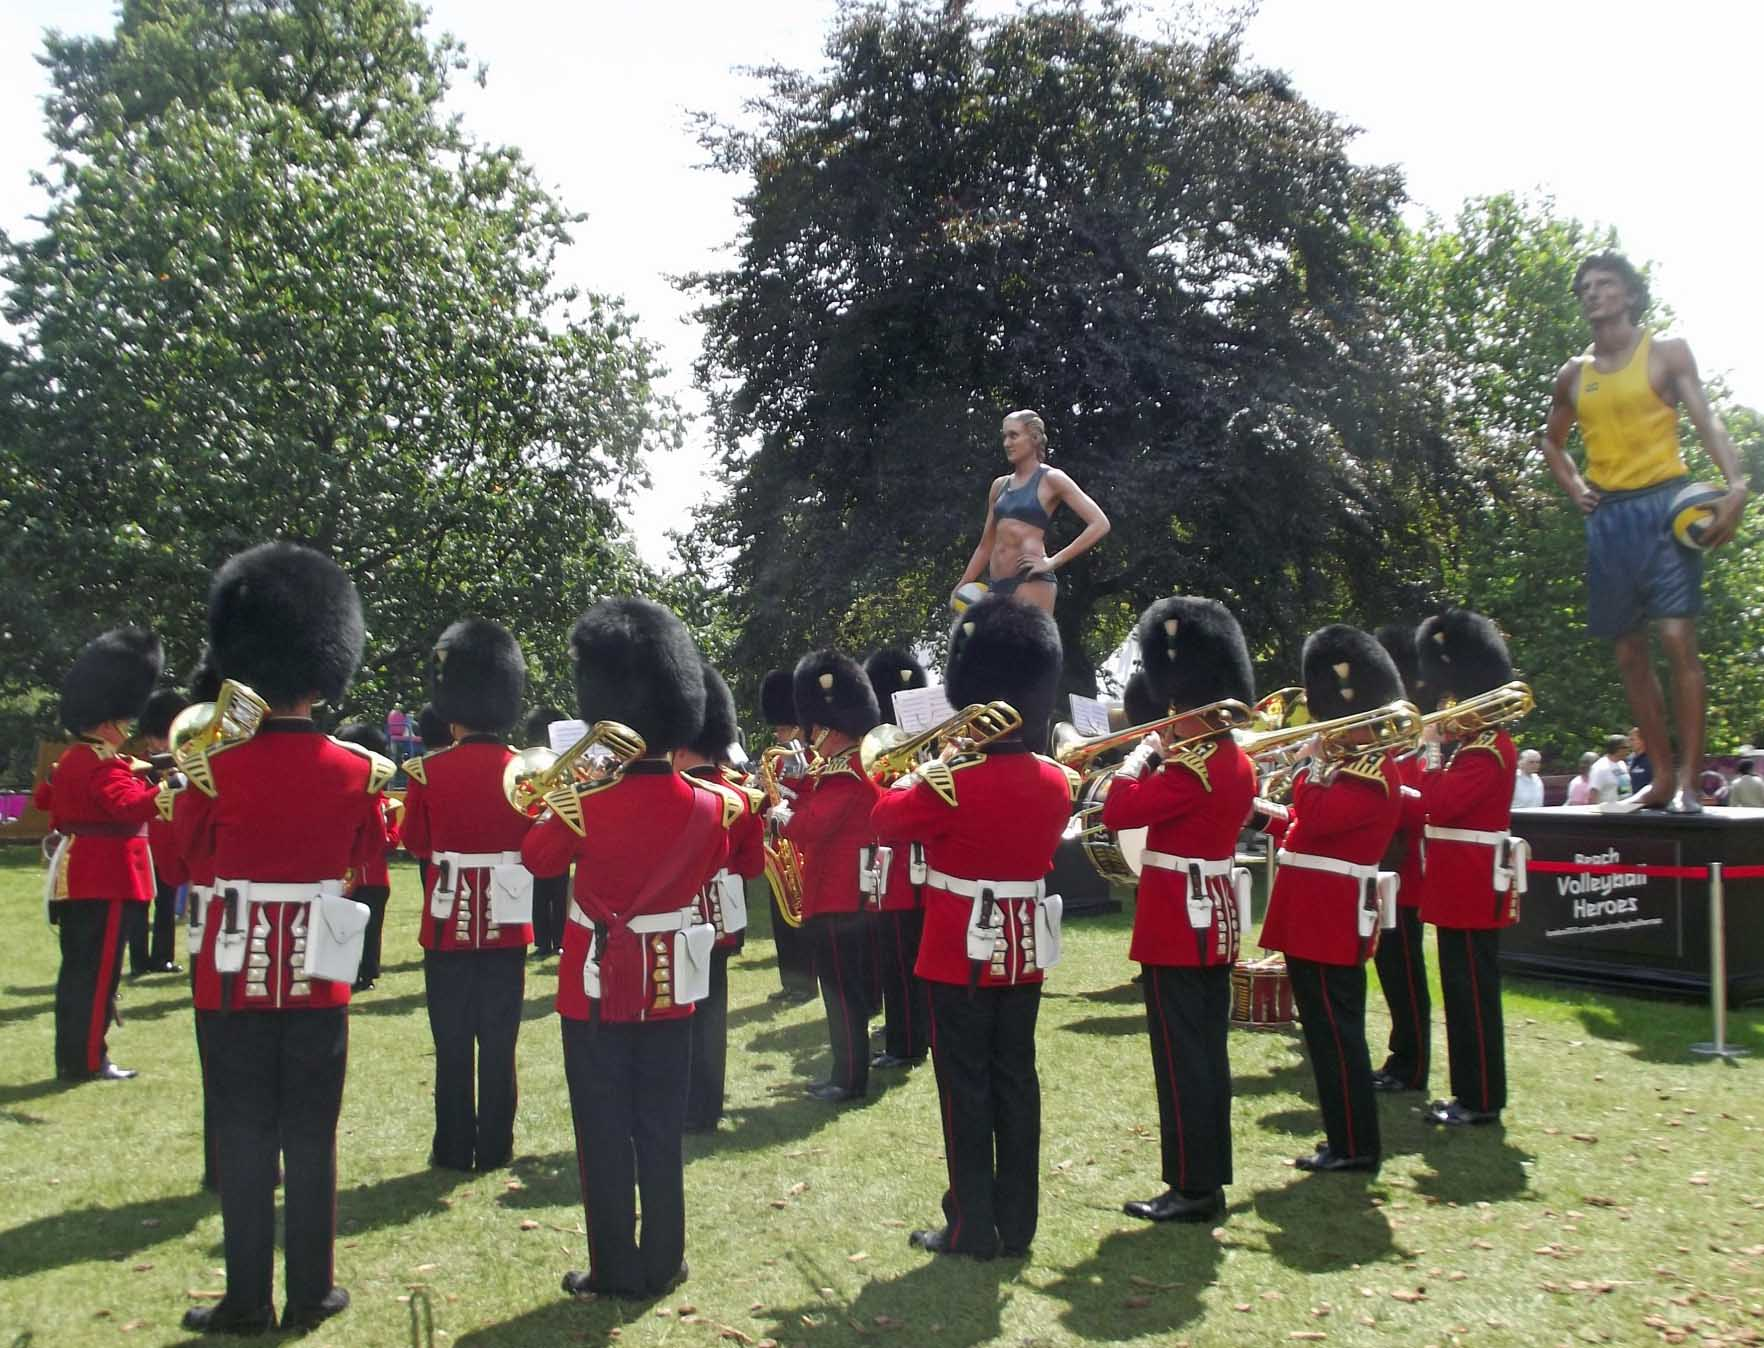 Brass band in red uniforms